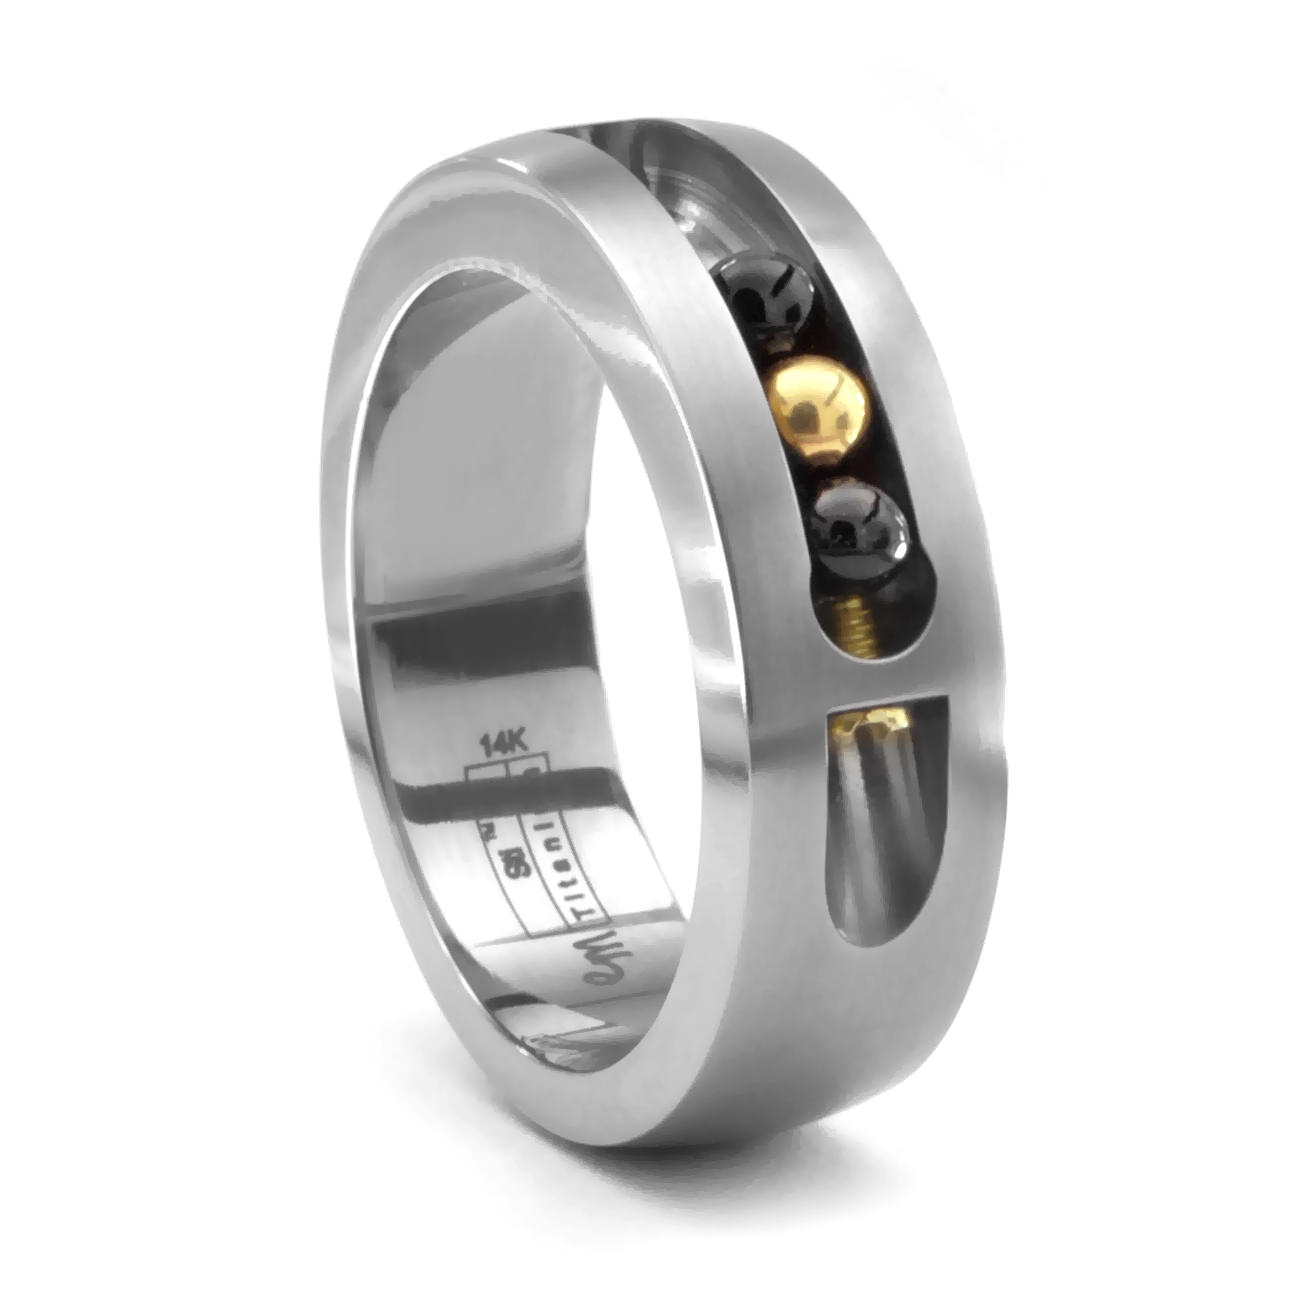 for rings top men meme best public lifestyle your source active heavycom ring ultra wedding engagement women u